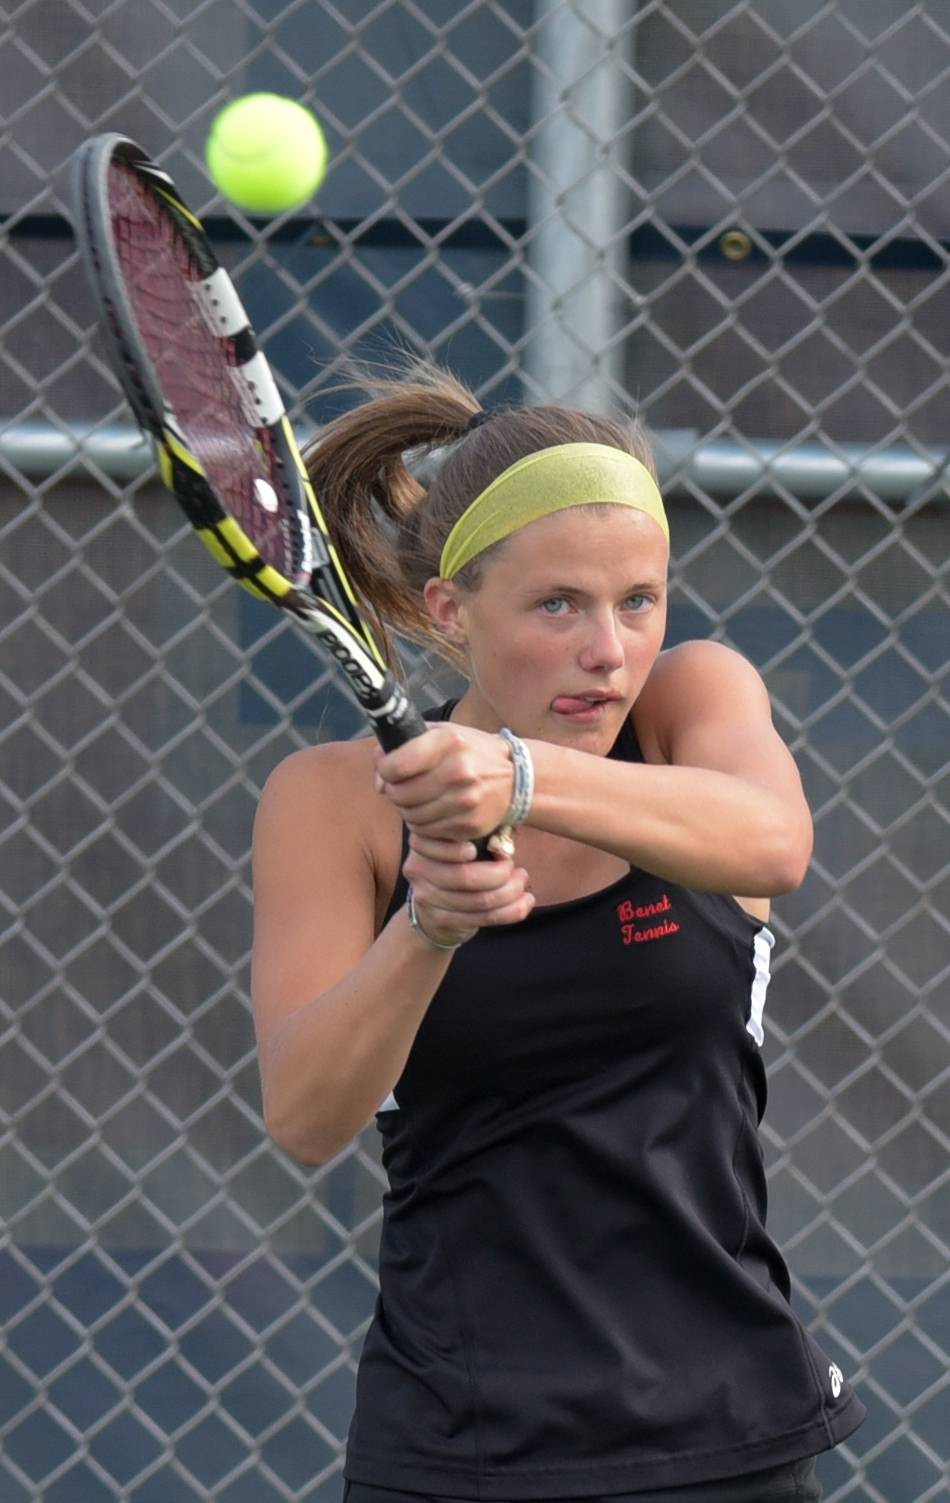 Benet's Caroline Arnold competes against Naperville North's Nyah Woller-Li during varsity girls tennis in Naperville on September 6, 2017.